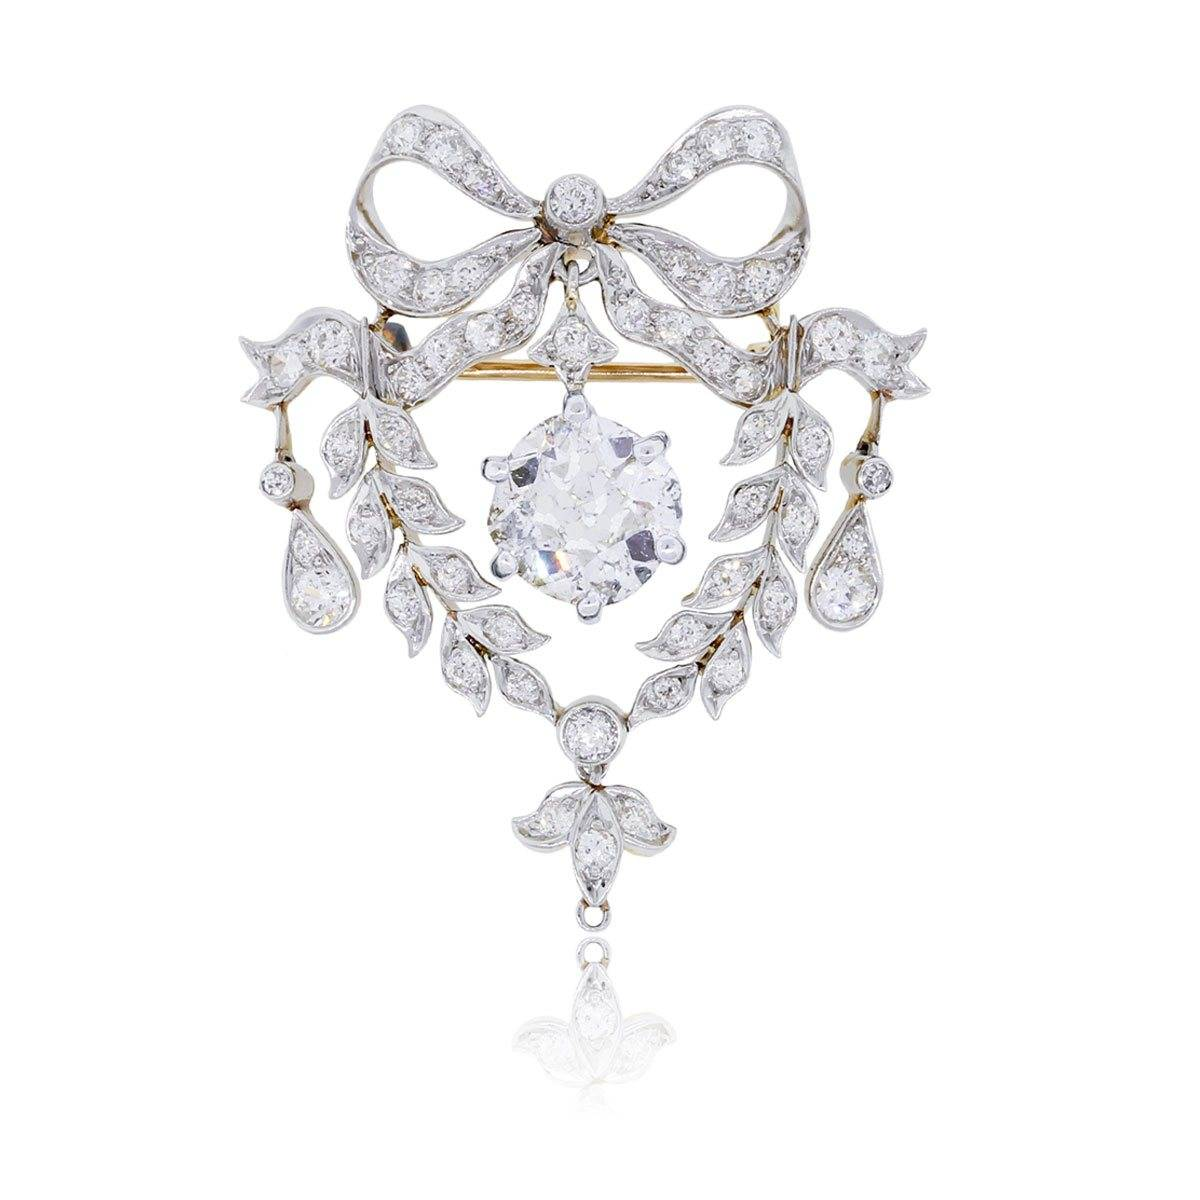 This amazing antique diamond brooch features a true cushion cut diamond center.